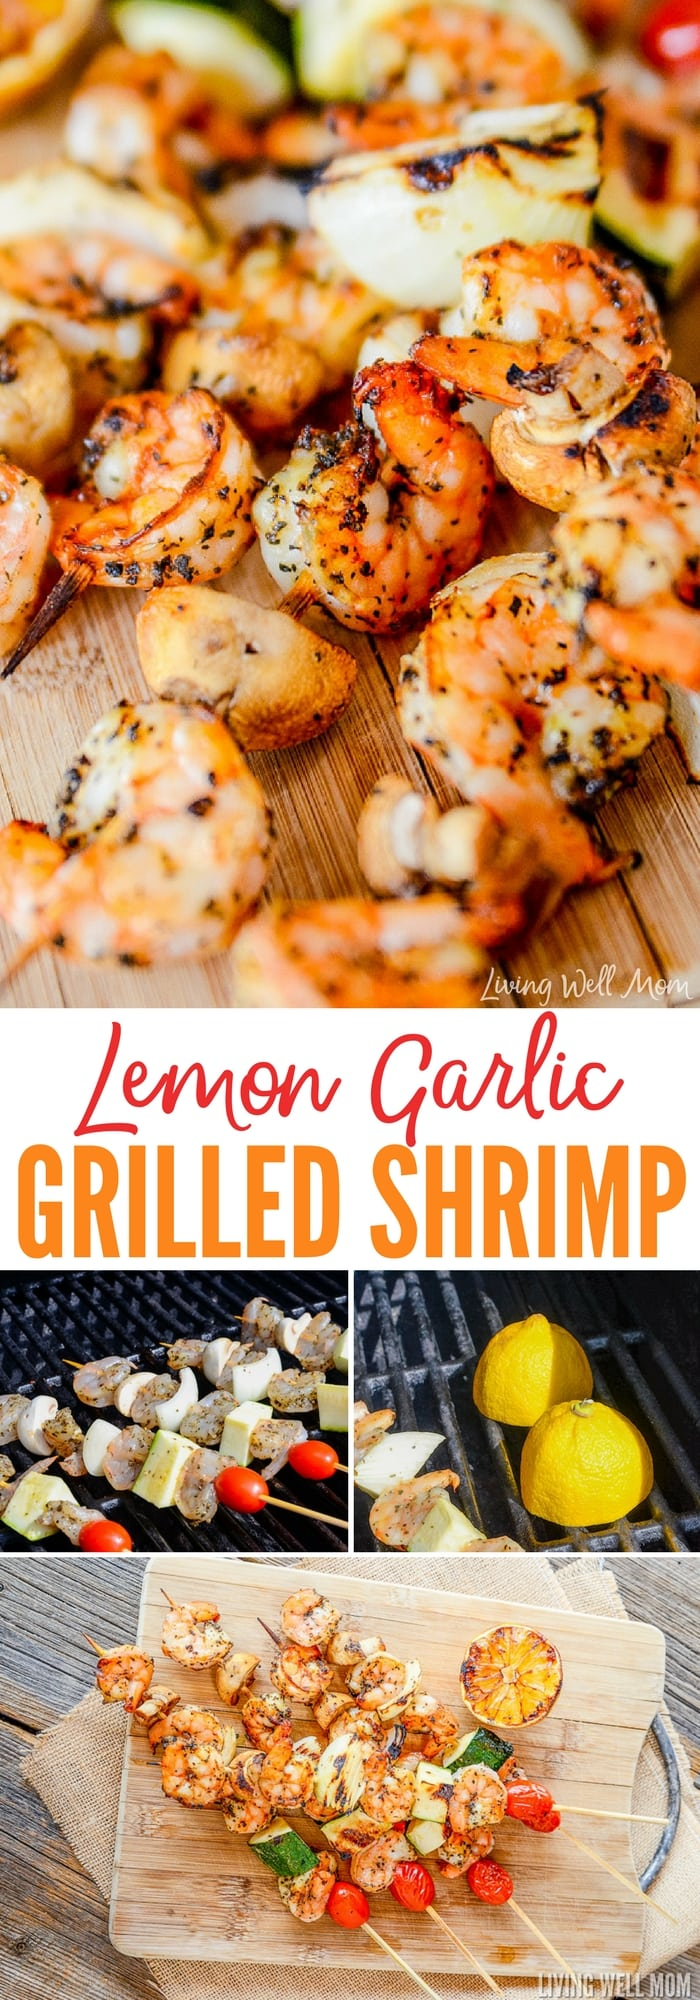 This flavor-packed Lemon Garlic Grilled Shrimp Skewers recipe is so easy to make and is a perfect dinner on a hot summer day! Plus it's good for you and is Paleo, Gluten-Free, and Dairy-free too!